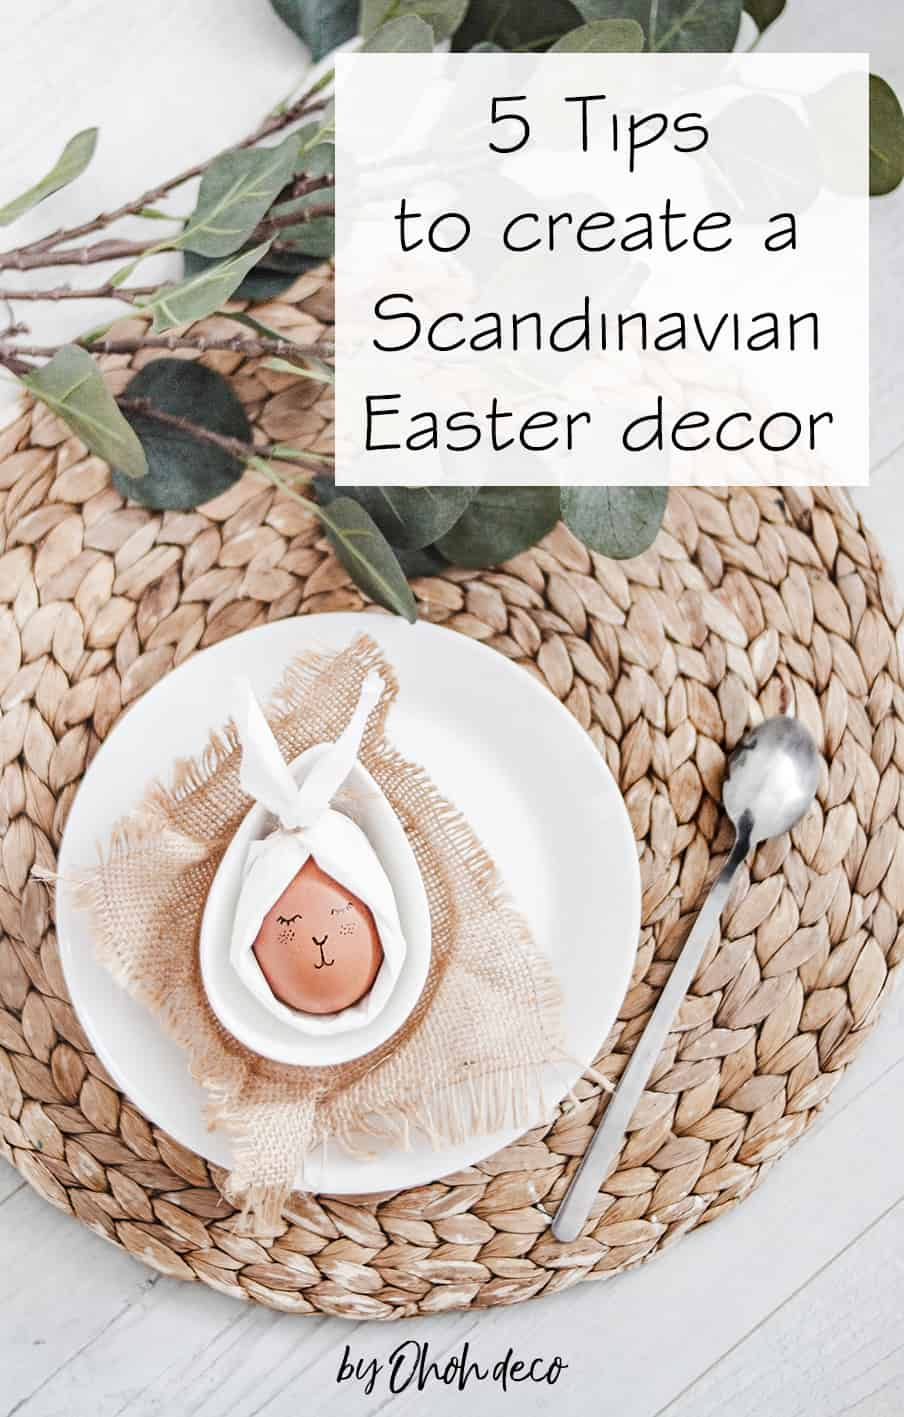 tips for a scandinavian easter decor